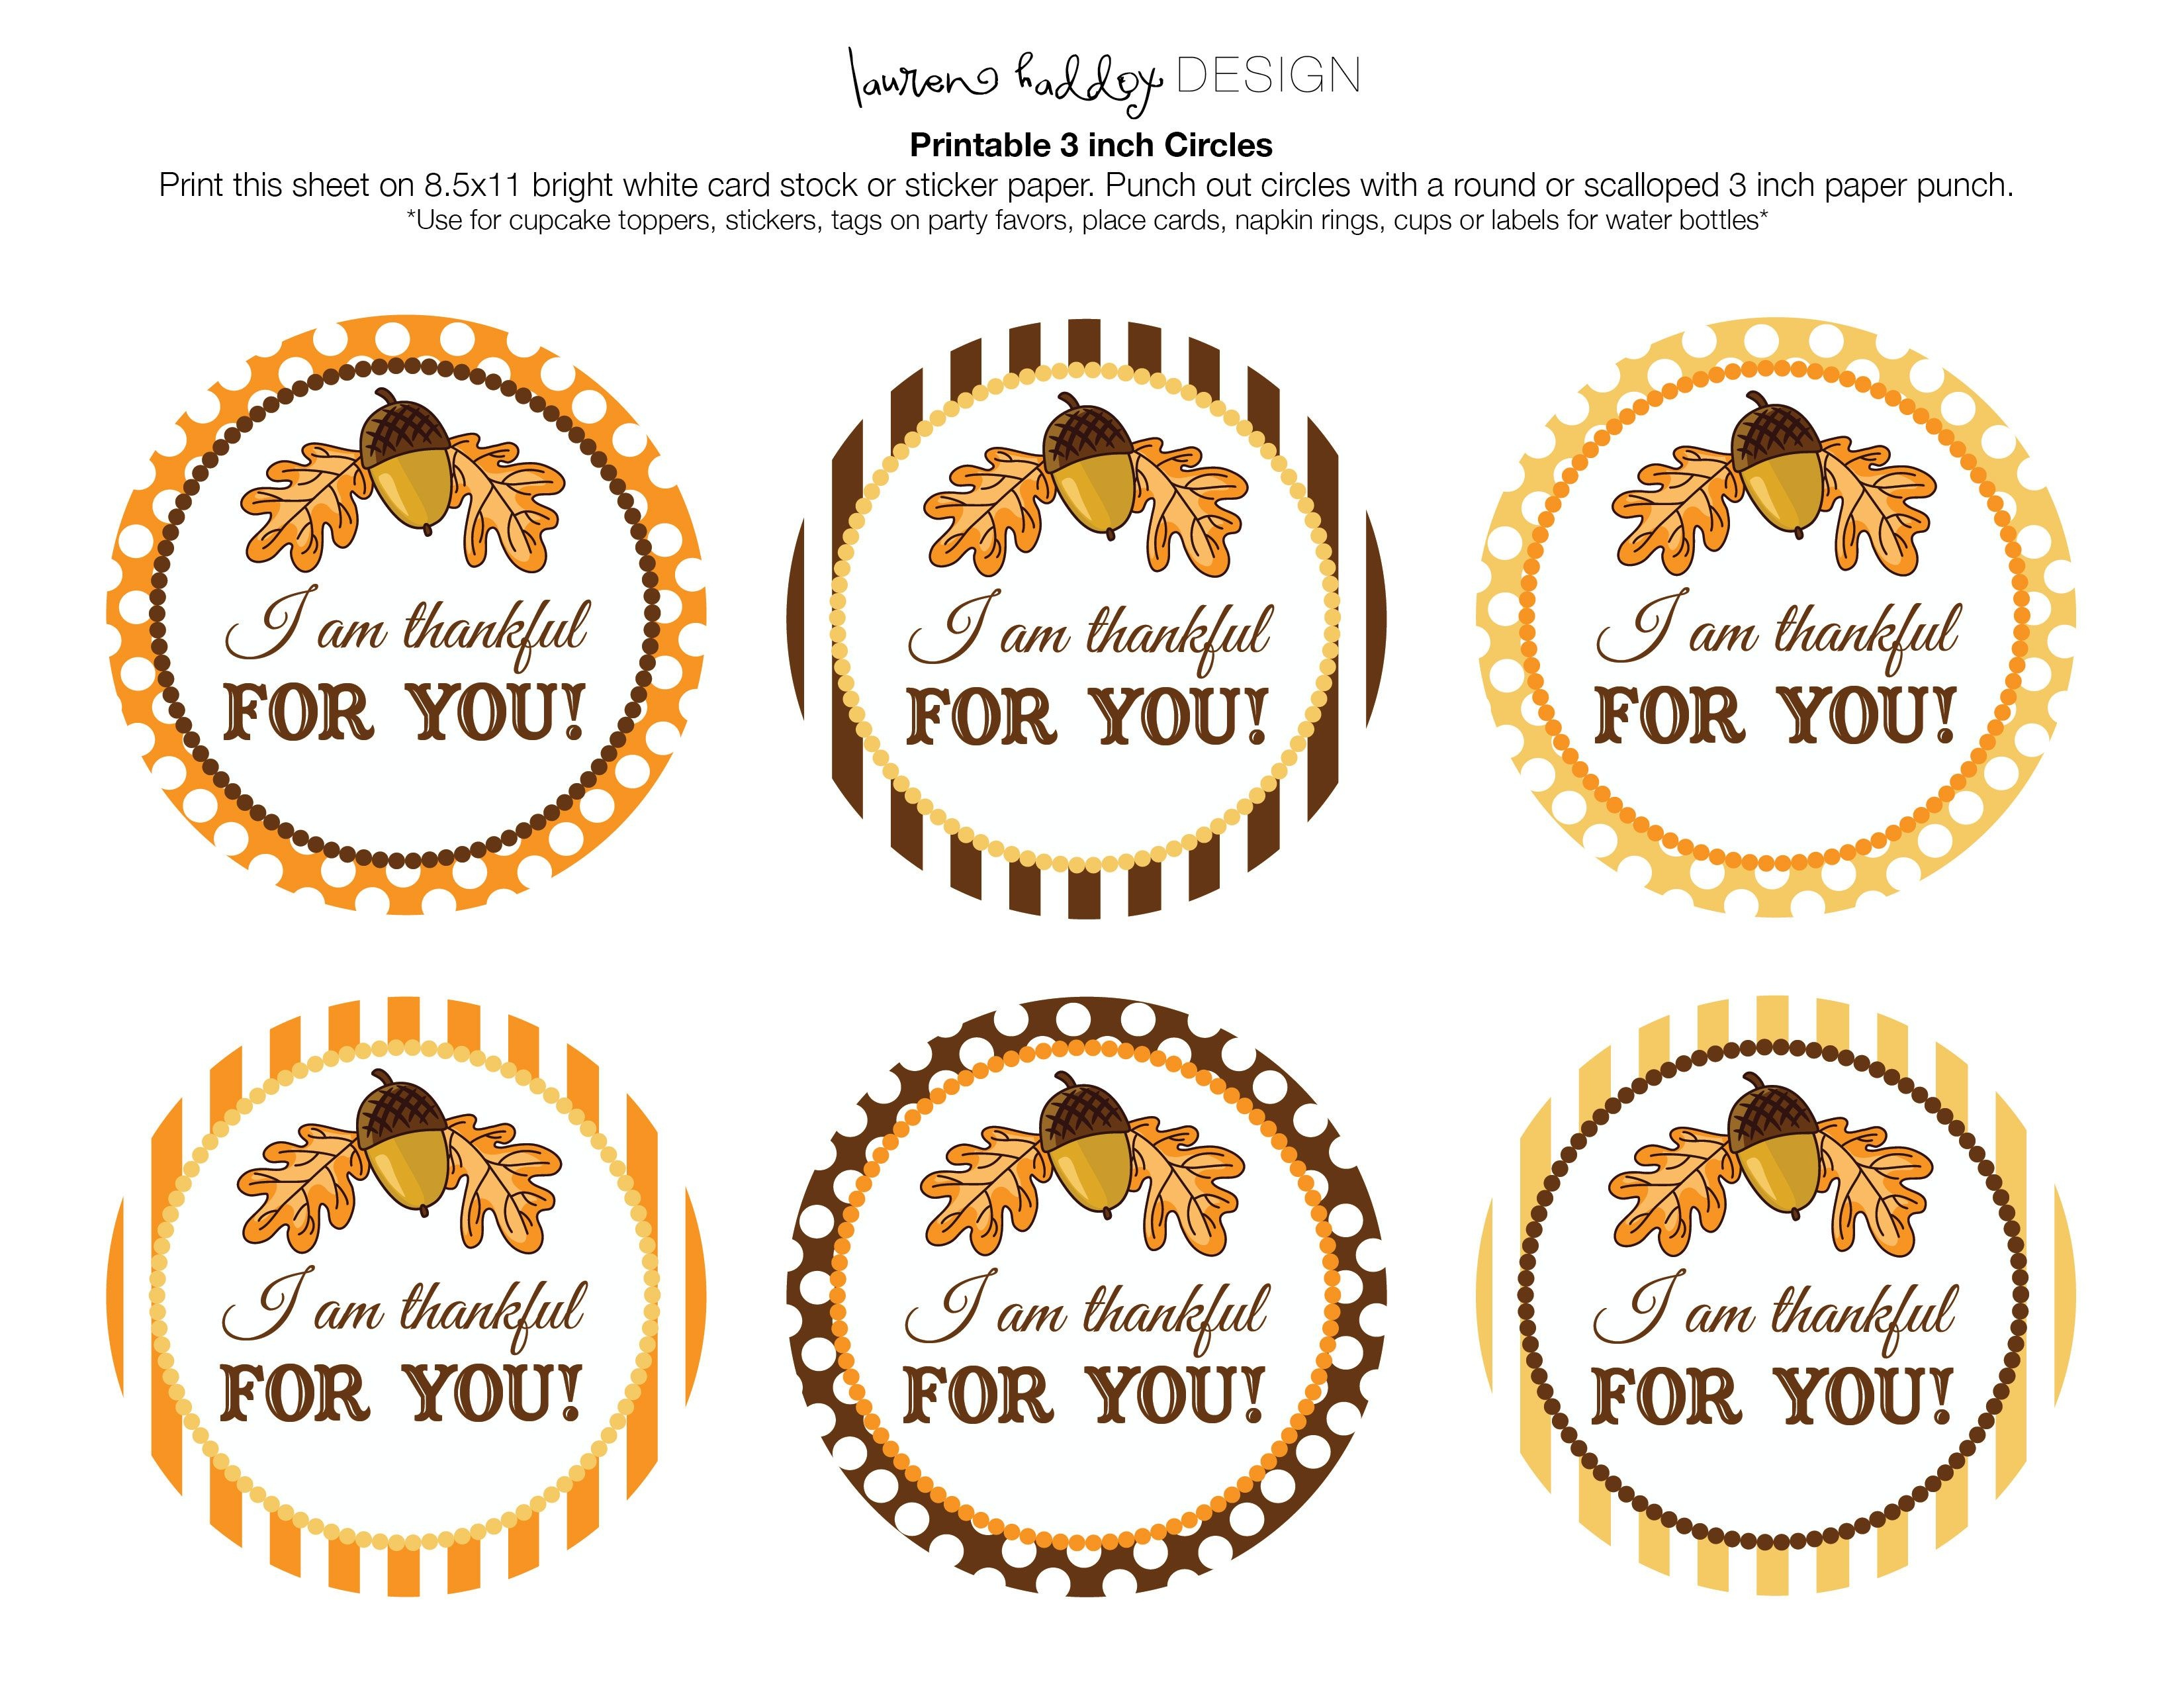 Pincathy Carr On Ho Ho Ho | Thanksgiving Gifts, Thanksgiving - Thankful For You Free Printable Tags